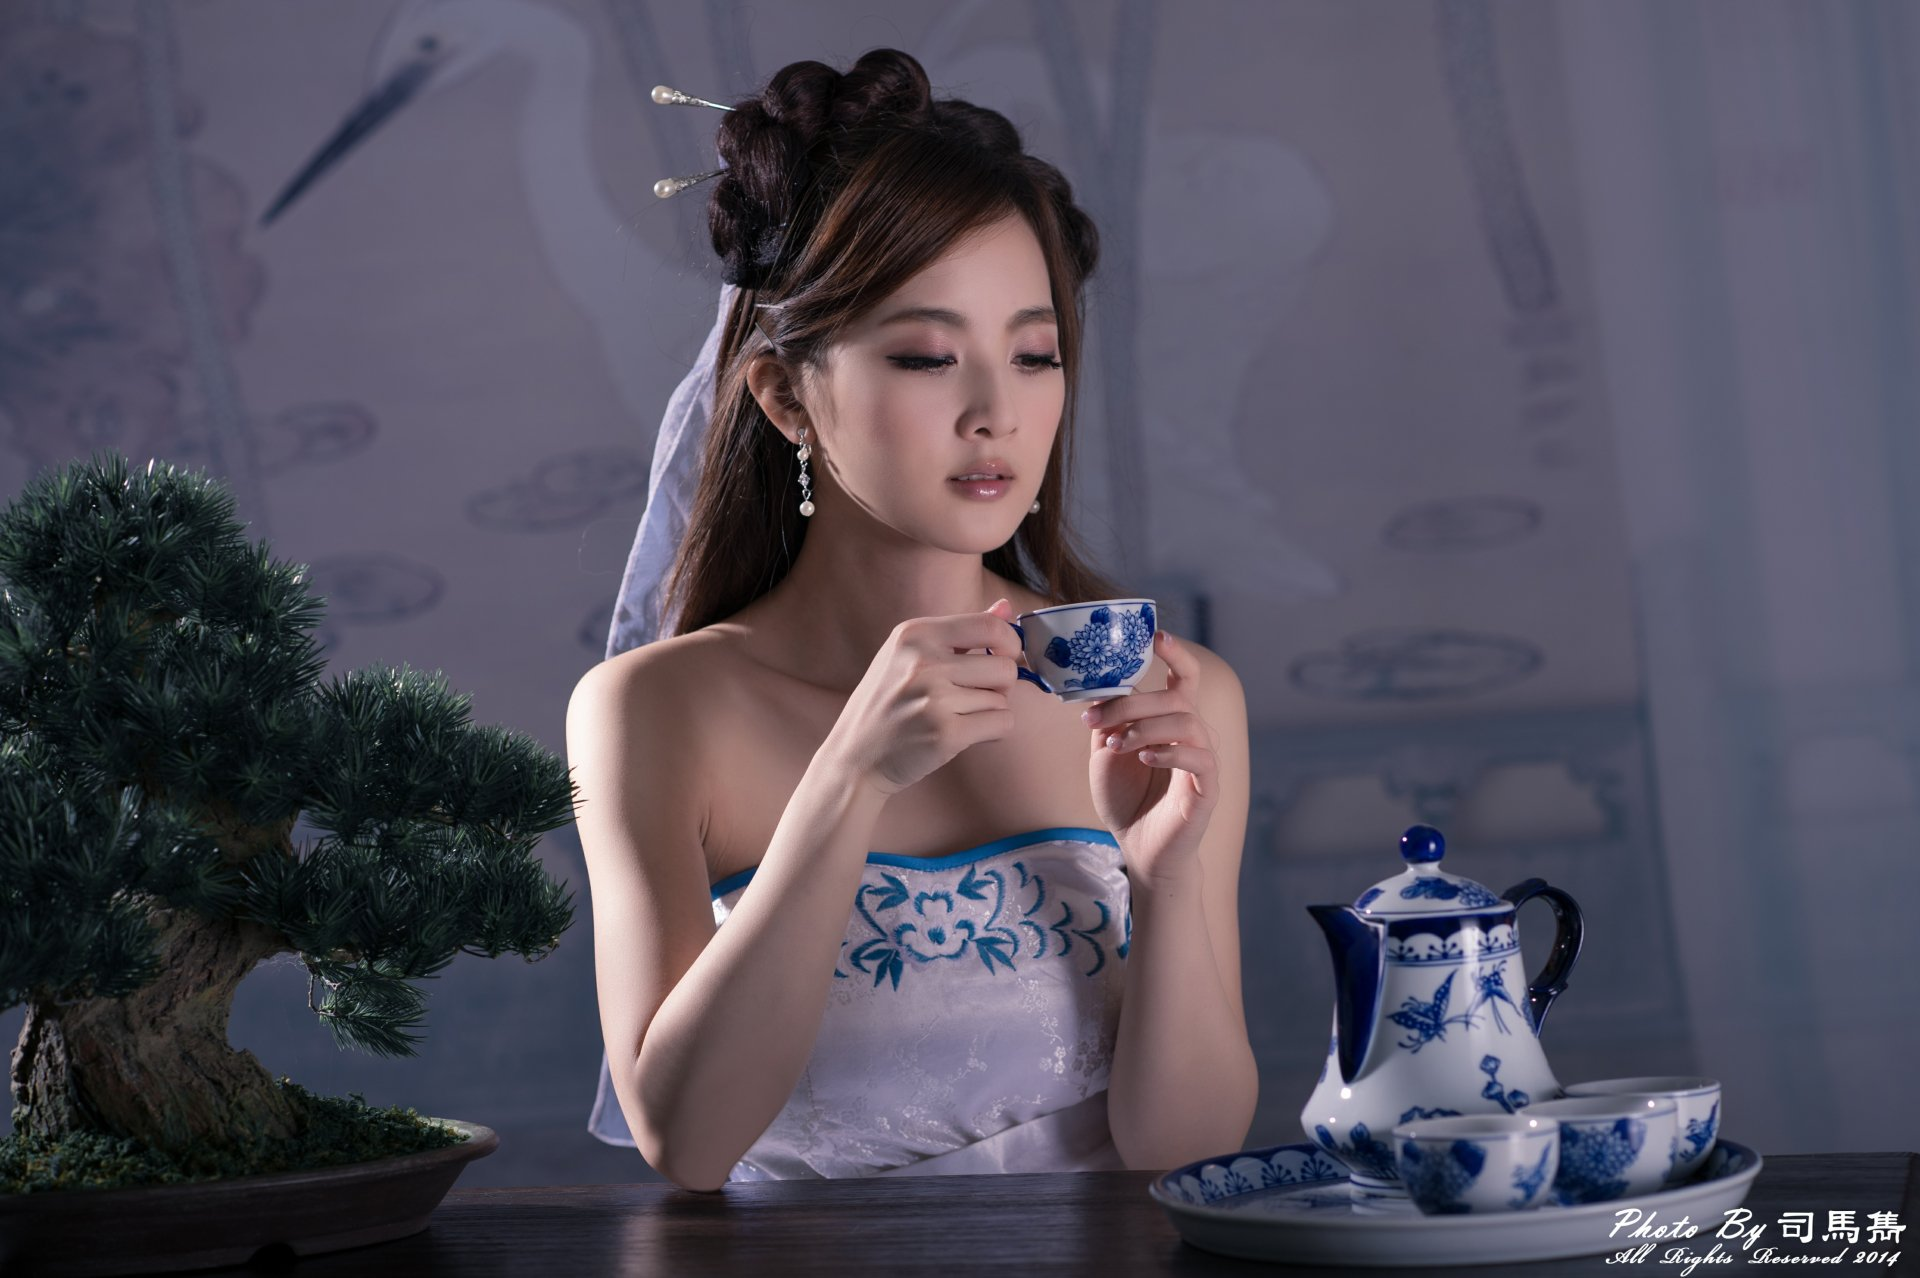 Women - Mikako Zhang Kaijie  Bonsai China Tea Set Cup Dress Hairpin Hair-Dress Chinese Taiwanese Asian Wallpaper